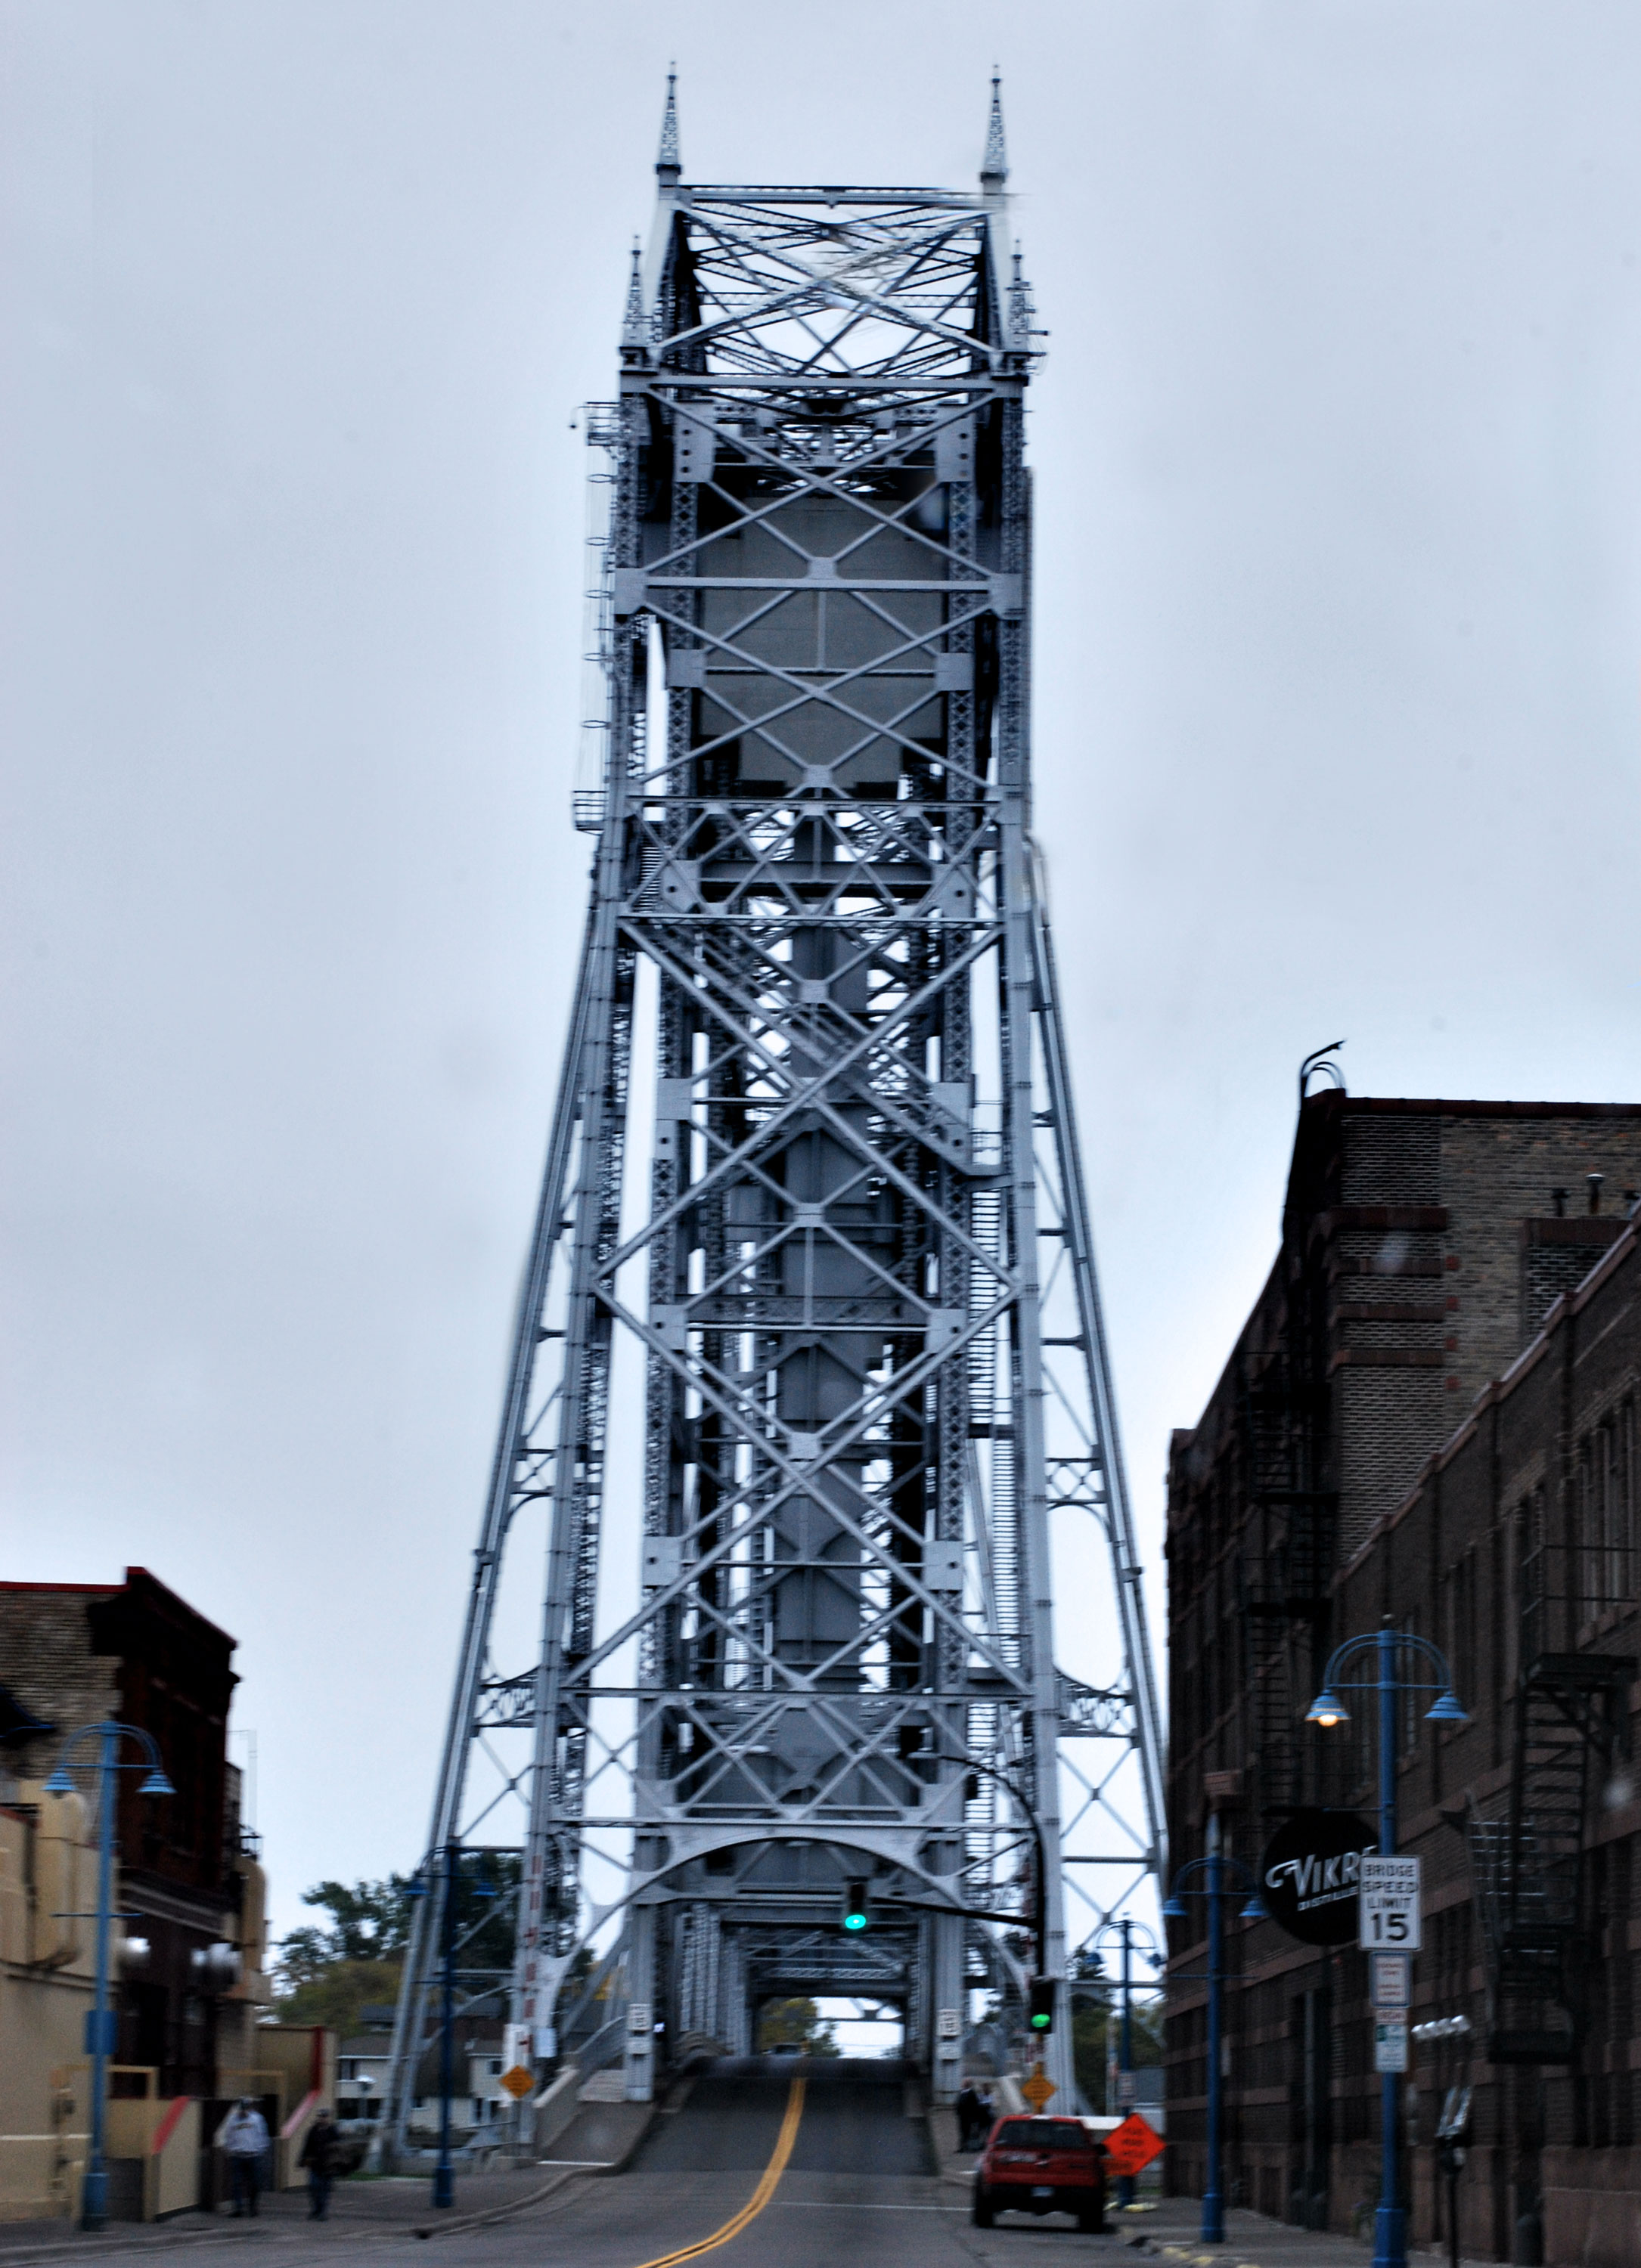 Aerial Lift Bridge, Duluth, MN